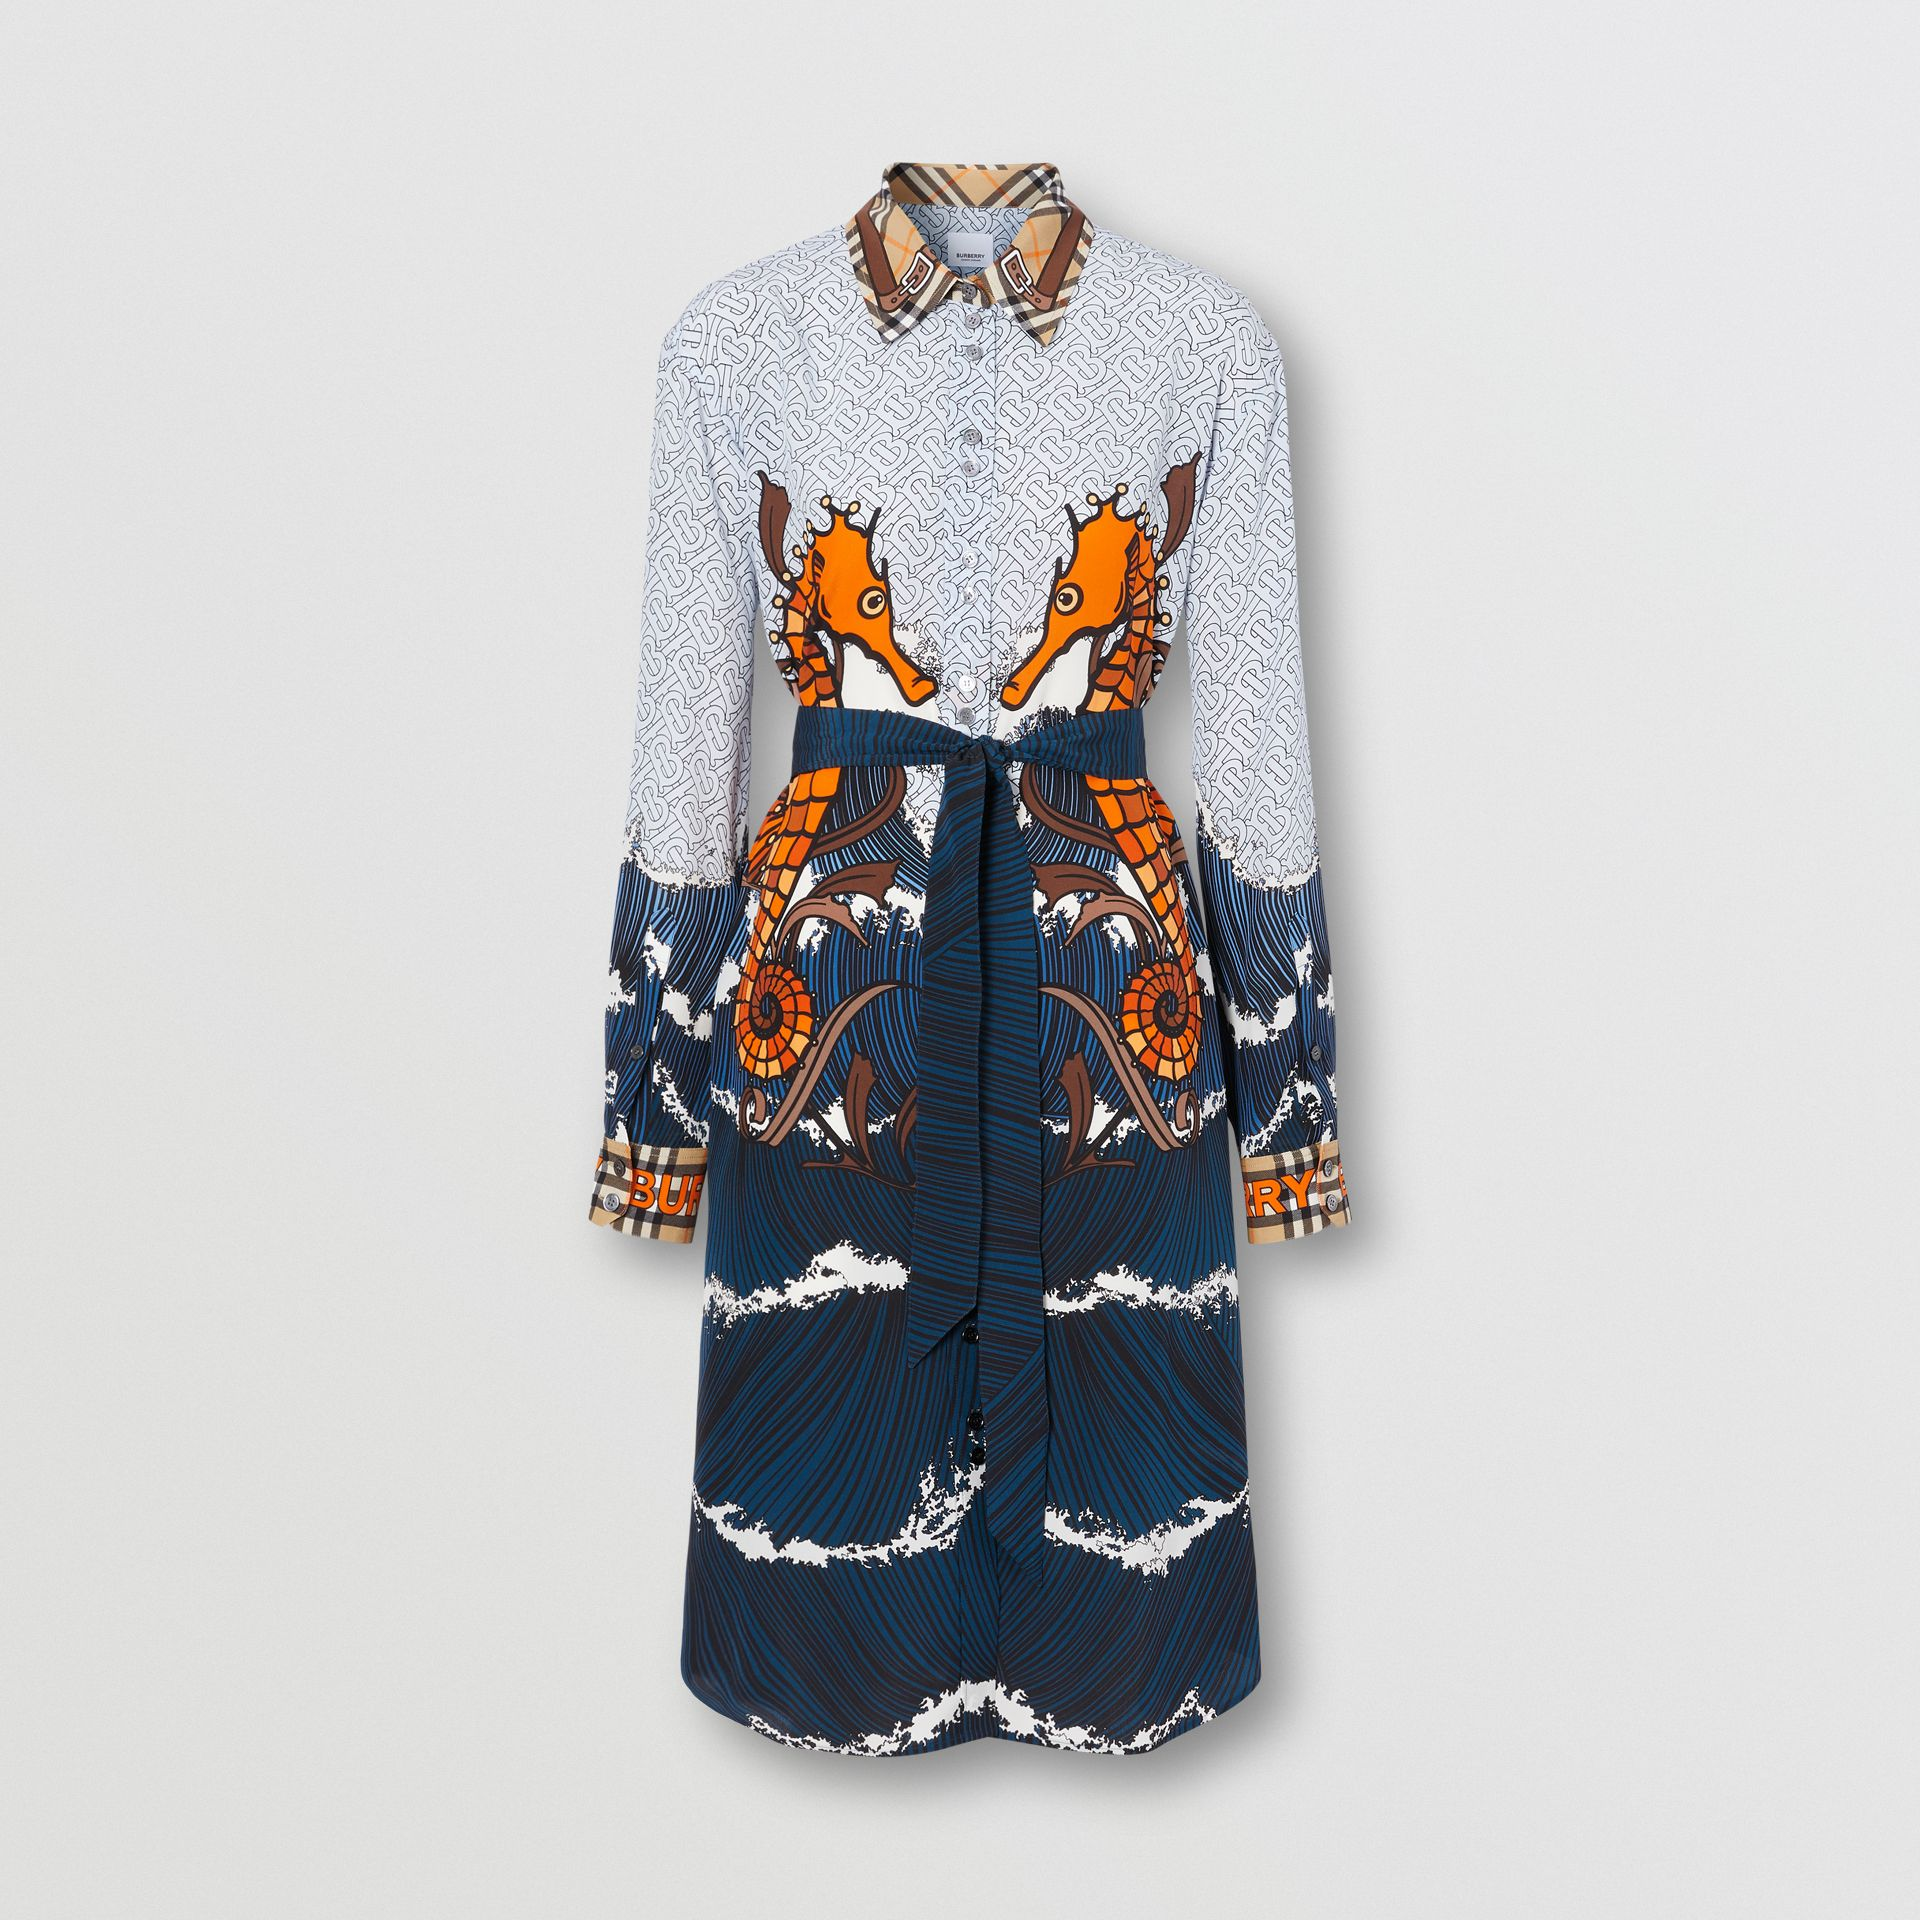 Seahorse and Monogram Print Silk Shirt Dress in Baby Blue - Women | Burberry United Kingdom - gallery image 3